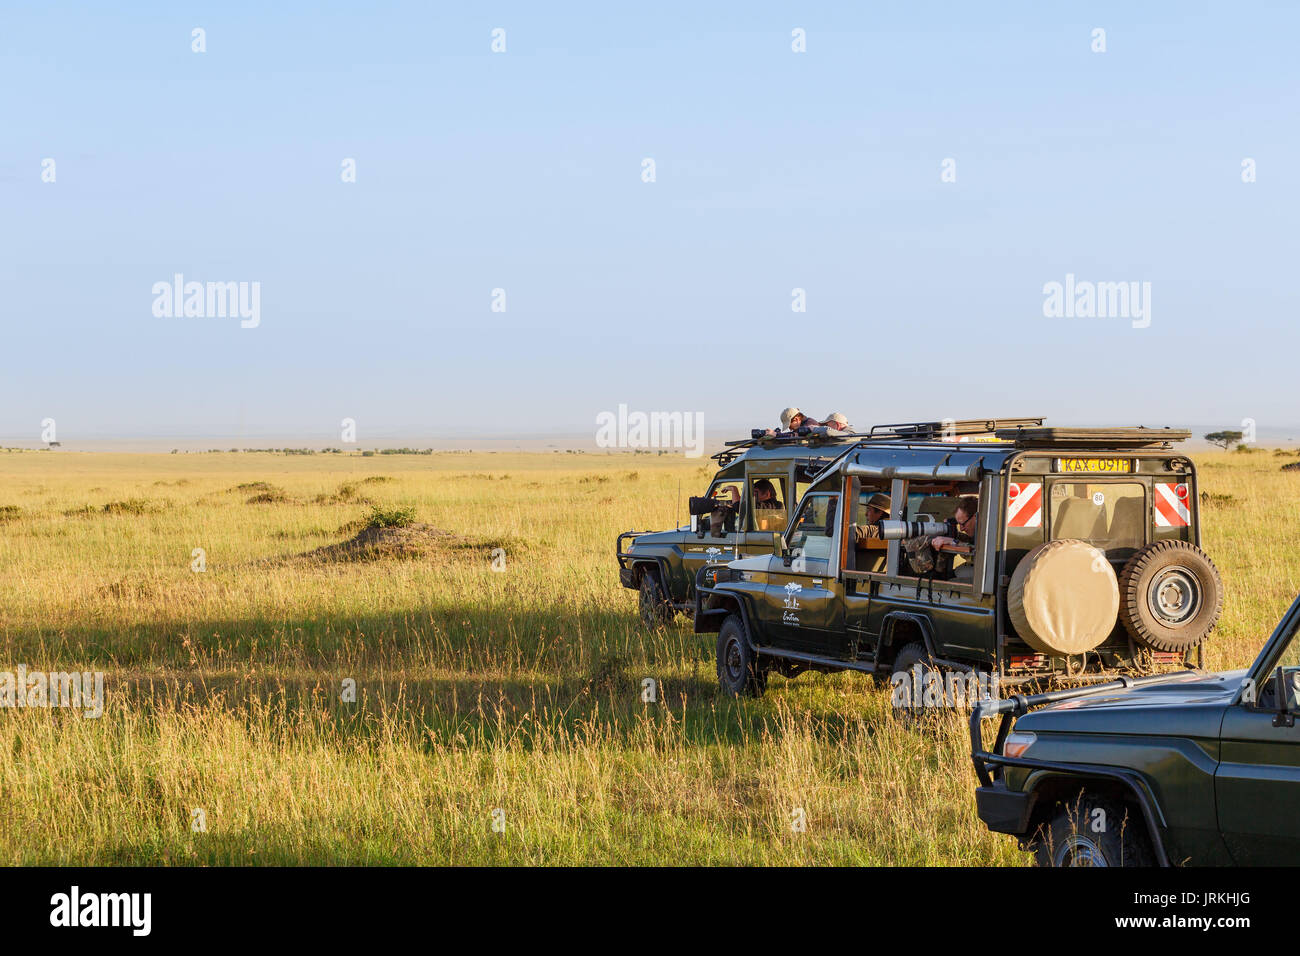 Photographers with telephoto lenses in safari vehicles on the African savannah - Stock Image